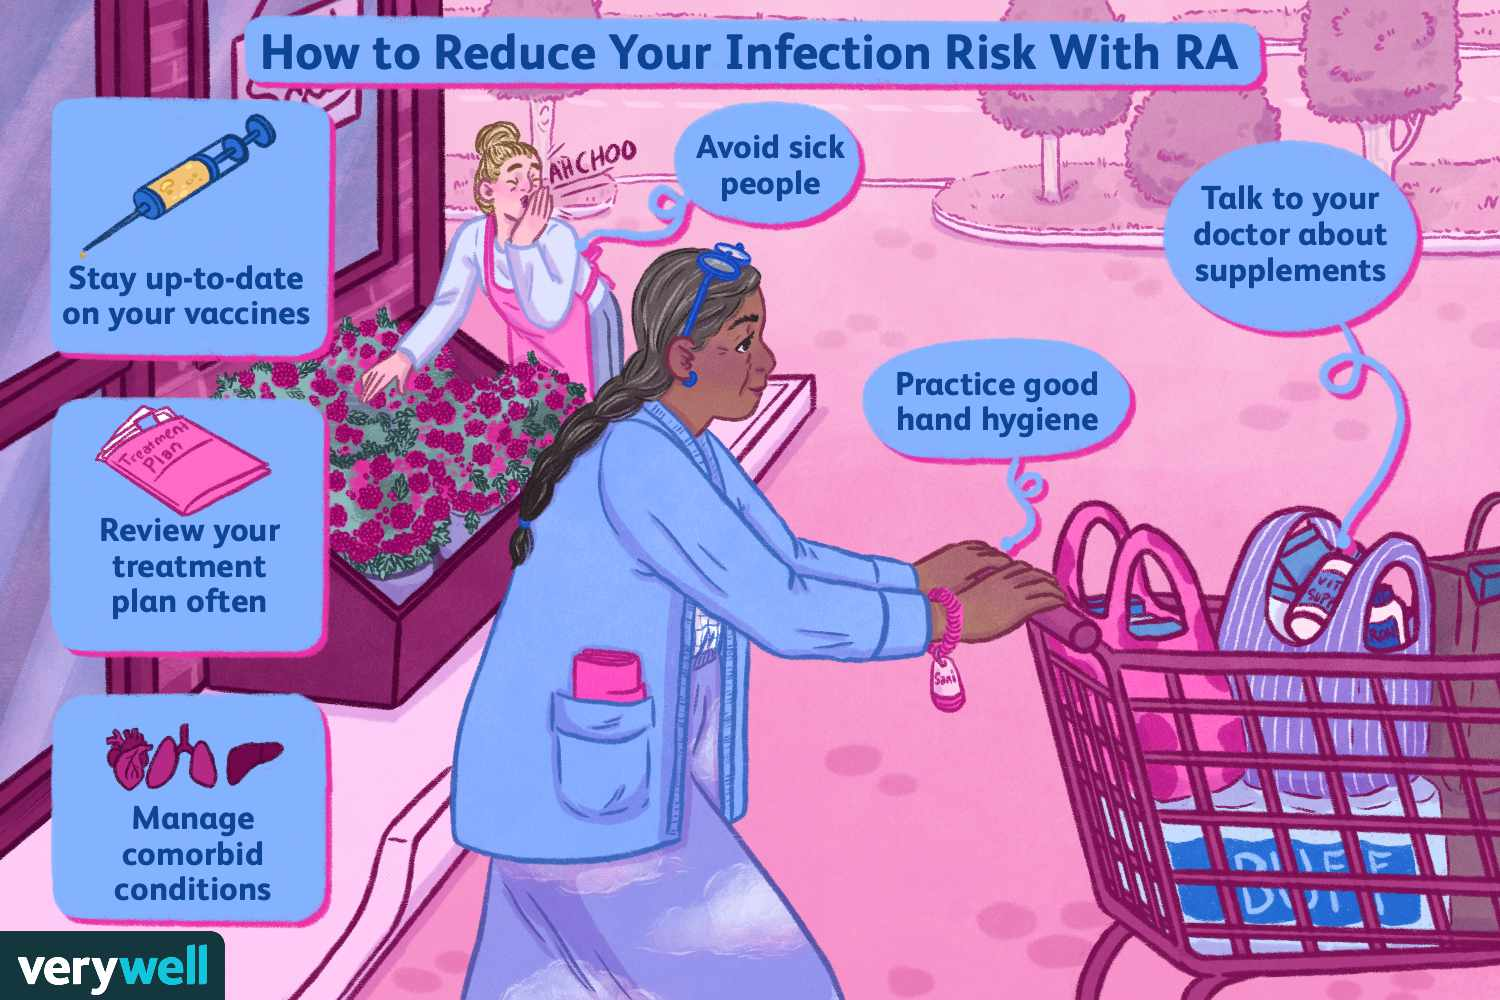 How to Reduce Your Infection Risk with RA